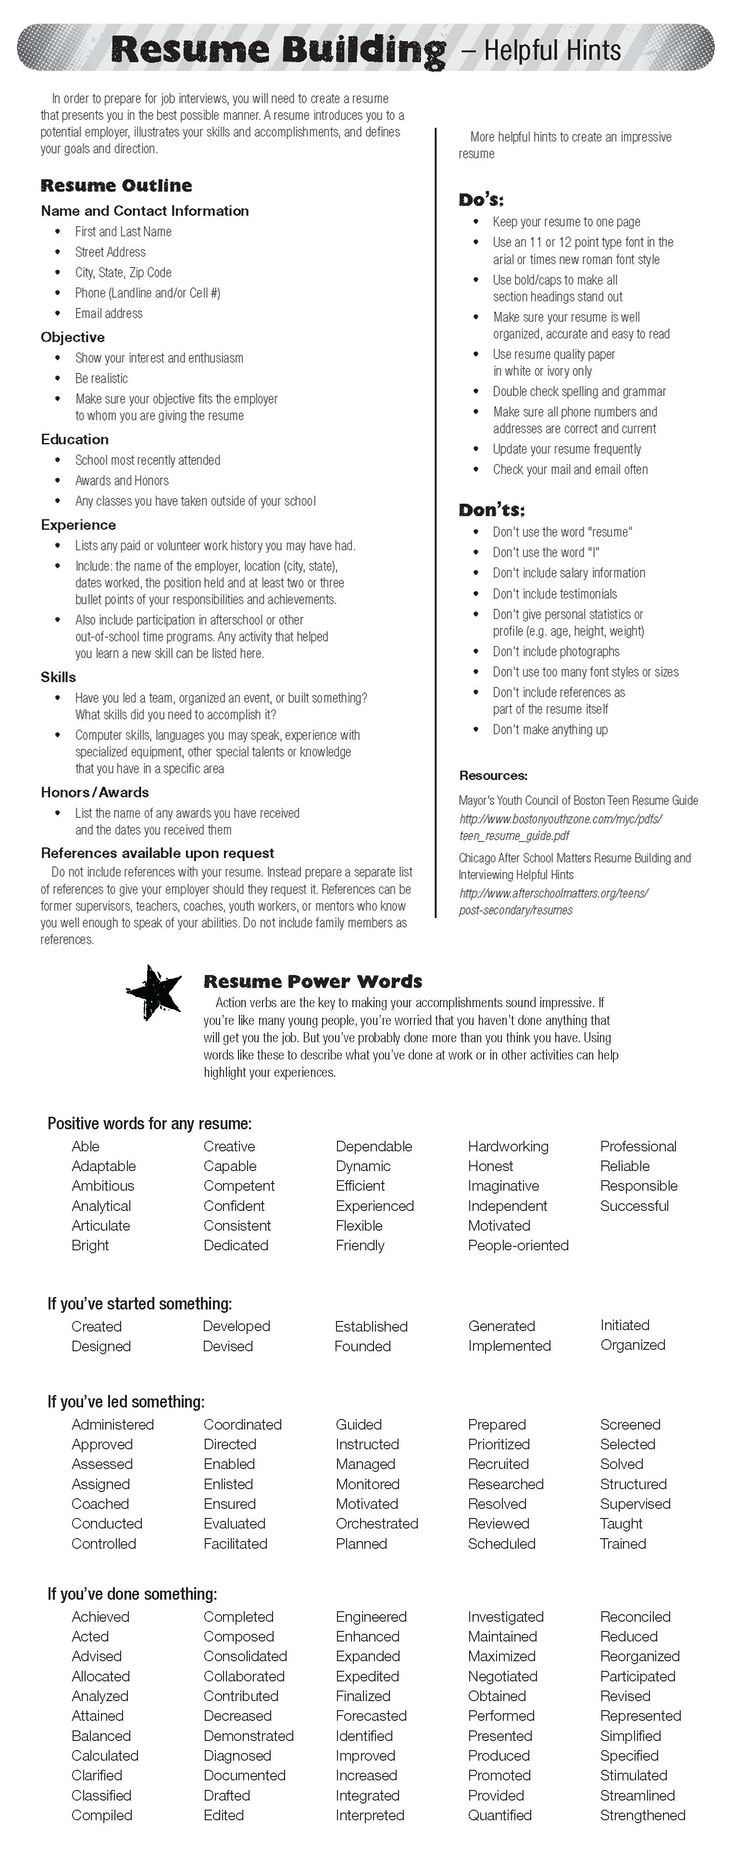 Opposenewapstandardsus  Wonderful  Ideas About Resume On Pinterest  Cv Format Resume Cv And  With Fetching  Ideas About Resume On Pinterest  Cv Format Resume Cv And Resume Templates With Delightful Medical Coder Resume Also Copy And Paste Resume Template In Addition Sample Resume Administrative Assistant And Job Objective On Resume As Well As Examples Of Customer Service Resumes Additionally Resume One Page From Pinterestcom With Opposenewapstandardsus  Fetching  Ideas About Resume On Pinterest  Cv Format Resume Cv And  With Delightful  Ideas About Resume On Pinterest  Cv Format Resume Cv And Resume Templates And Wonderful Medical Coder Resume Also Copy And Paste Resume Template In Addition Sample Resume Administrative Assistant From Pinterestcom